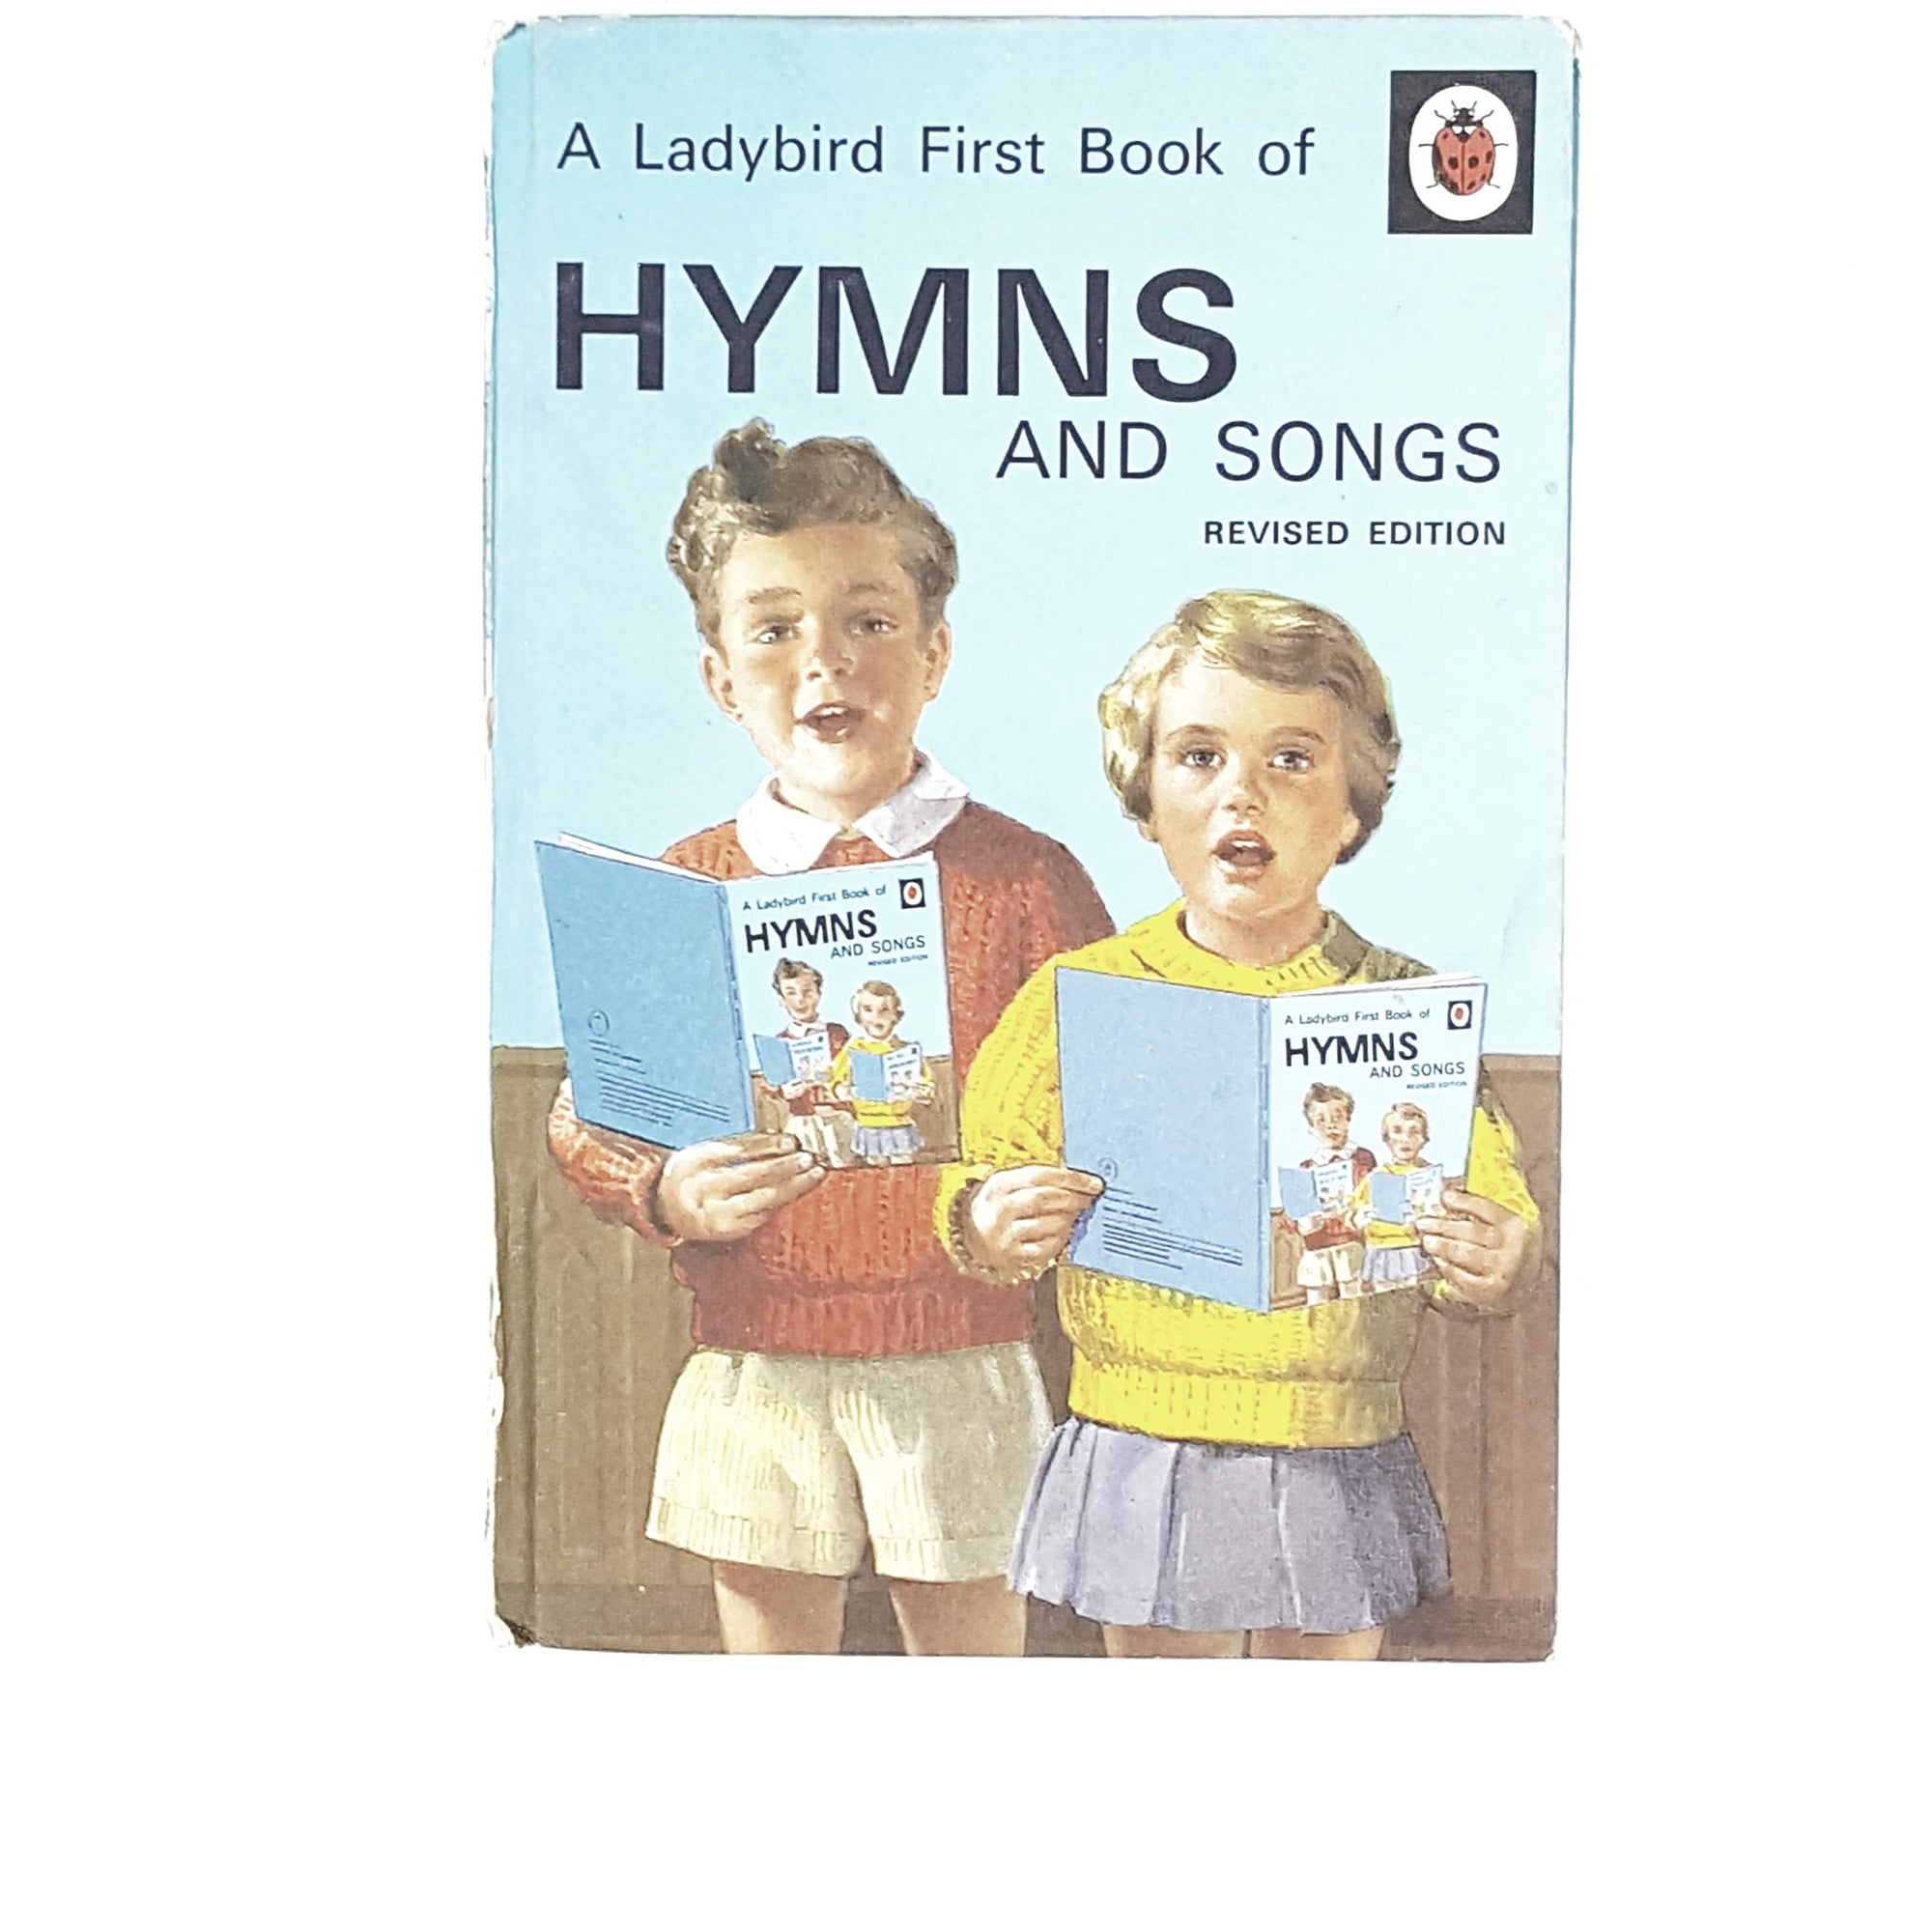 Vintage Ladybird: Hymns and Songs 1969